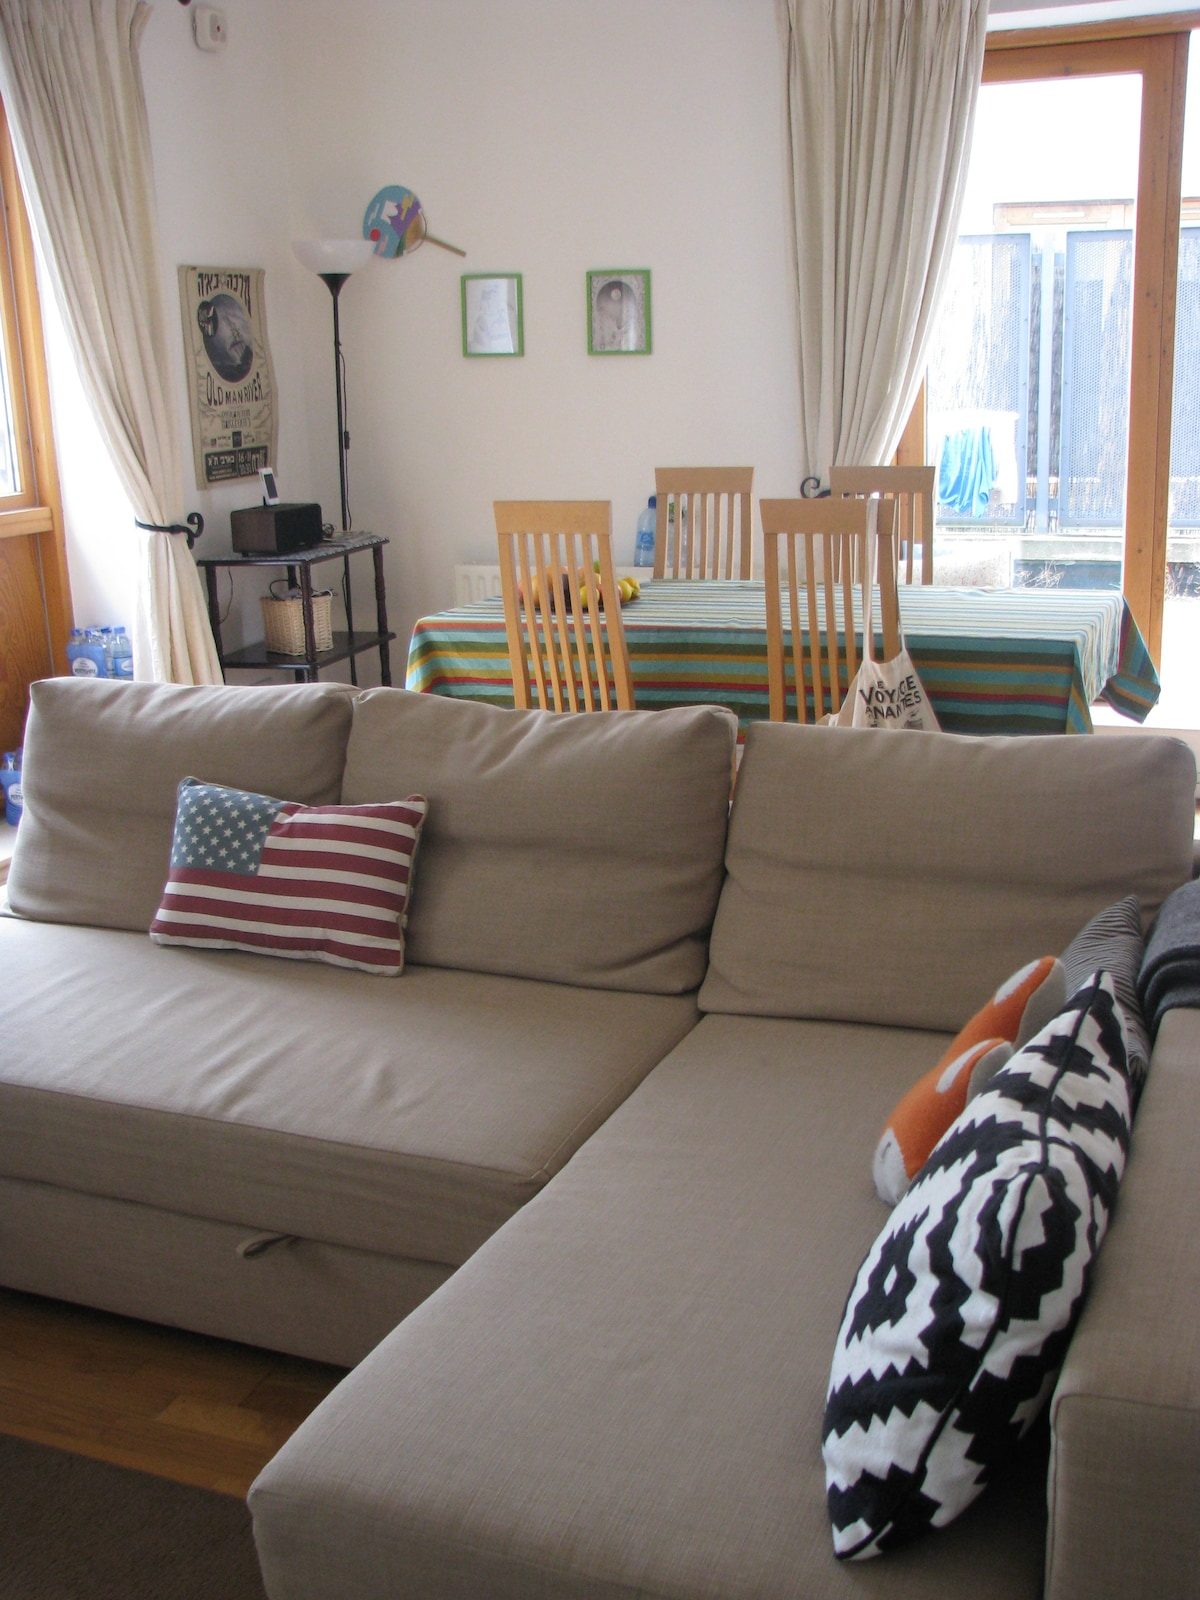 Our sofa can be converted to a double bed if you are more than 2 guests.